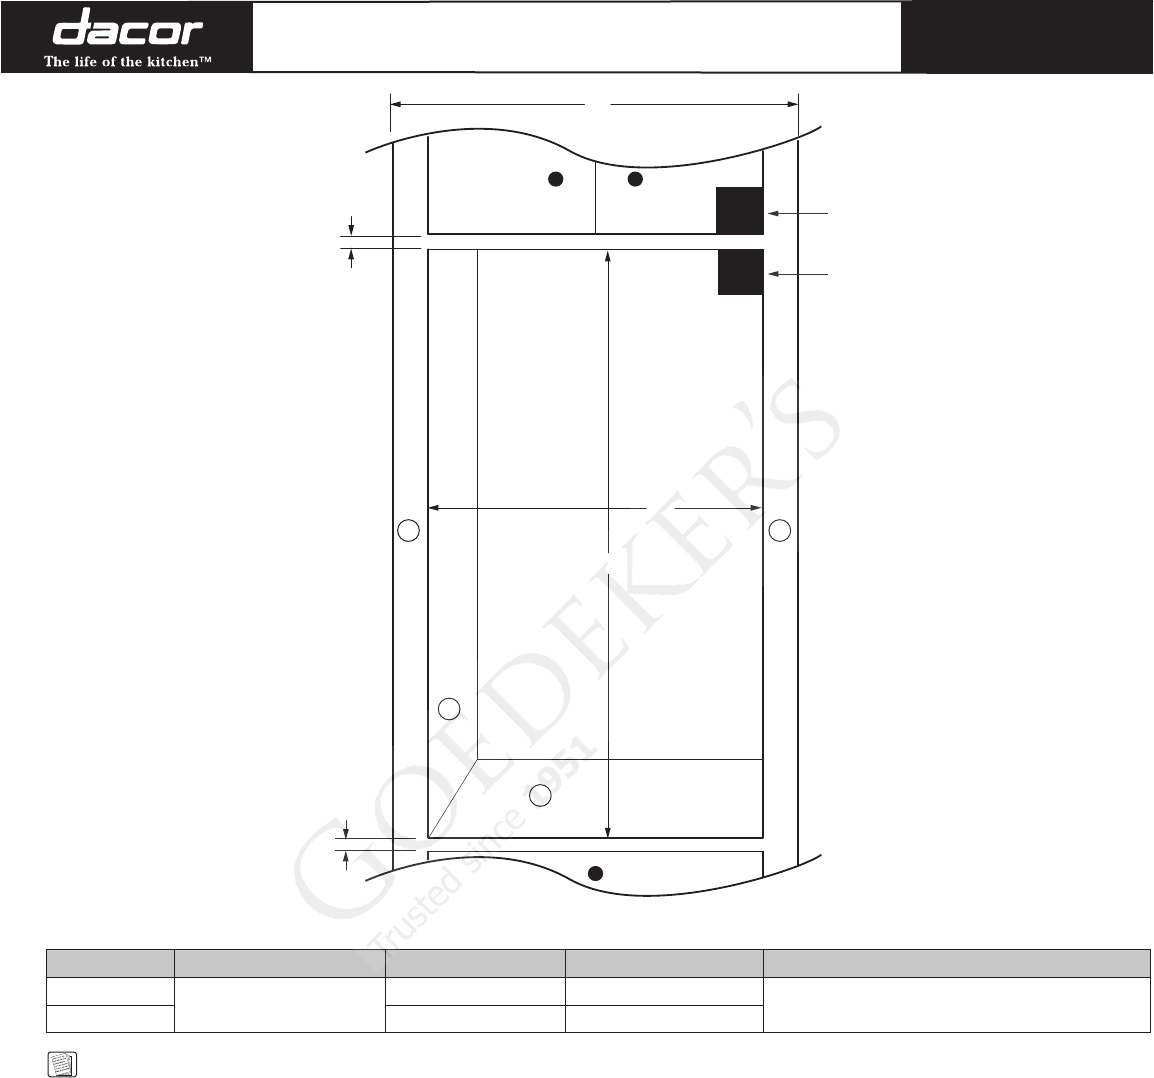 Dacor Oven Mov User Guide Manualsonlinecom Wall Wiring Diagram Manual